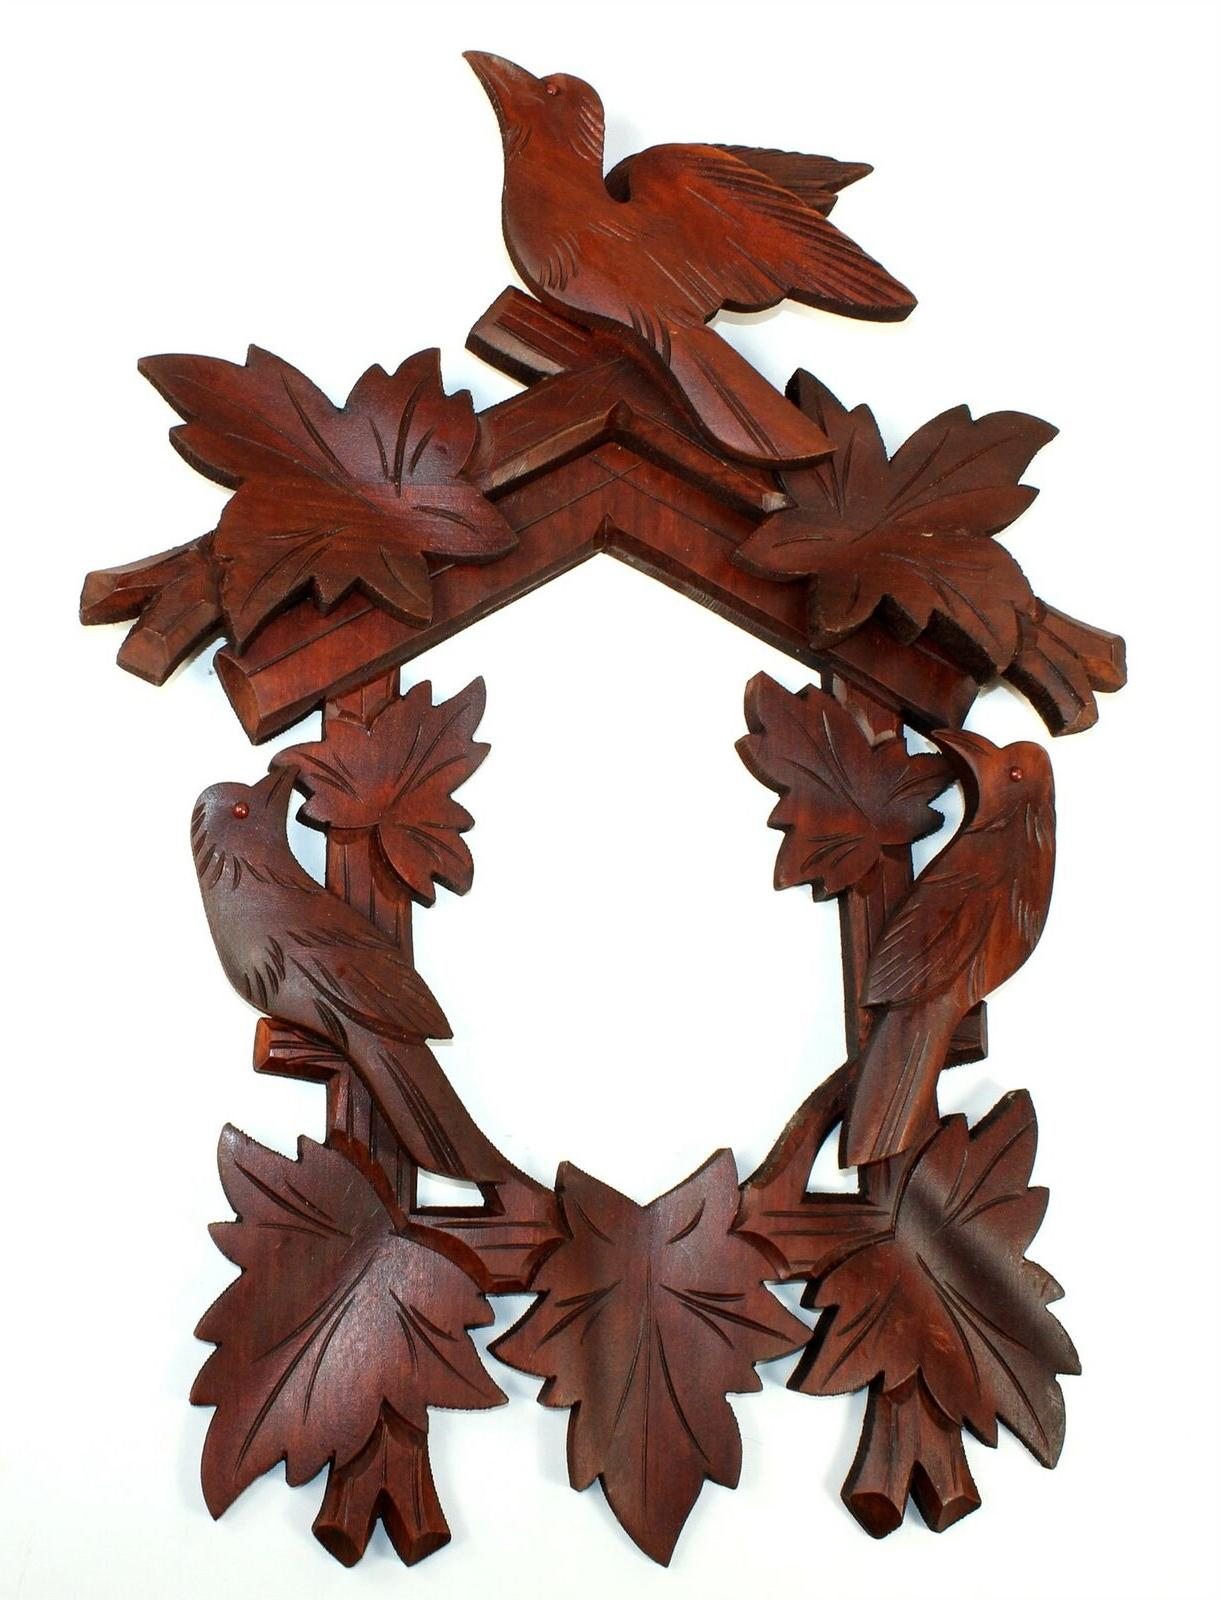 cuckoo clock case crown and front frame